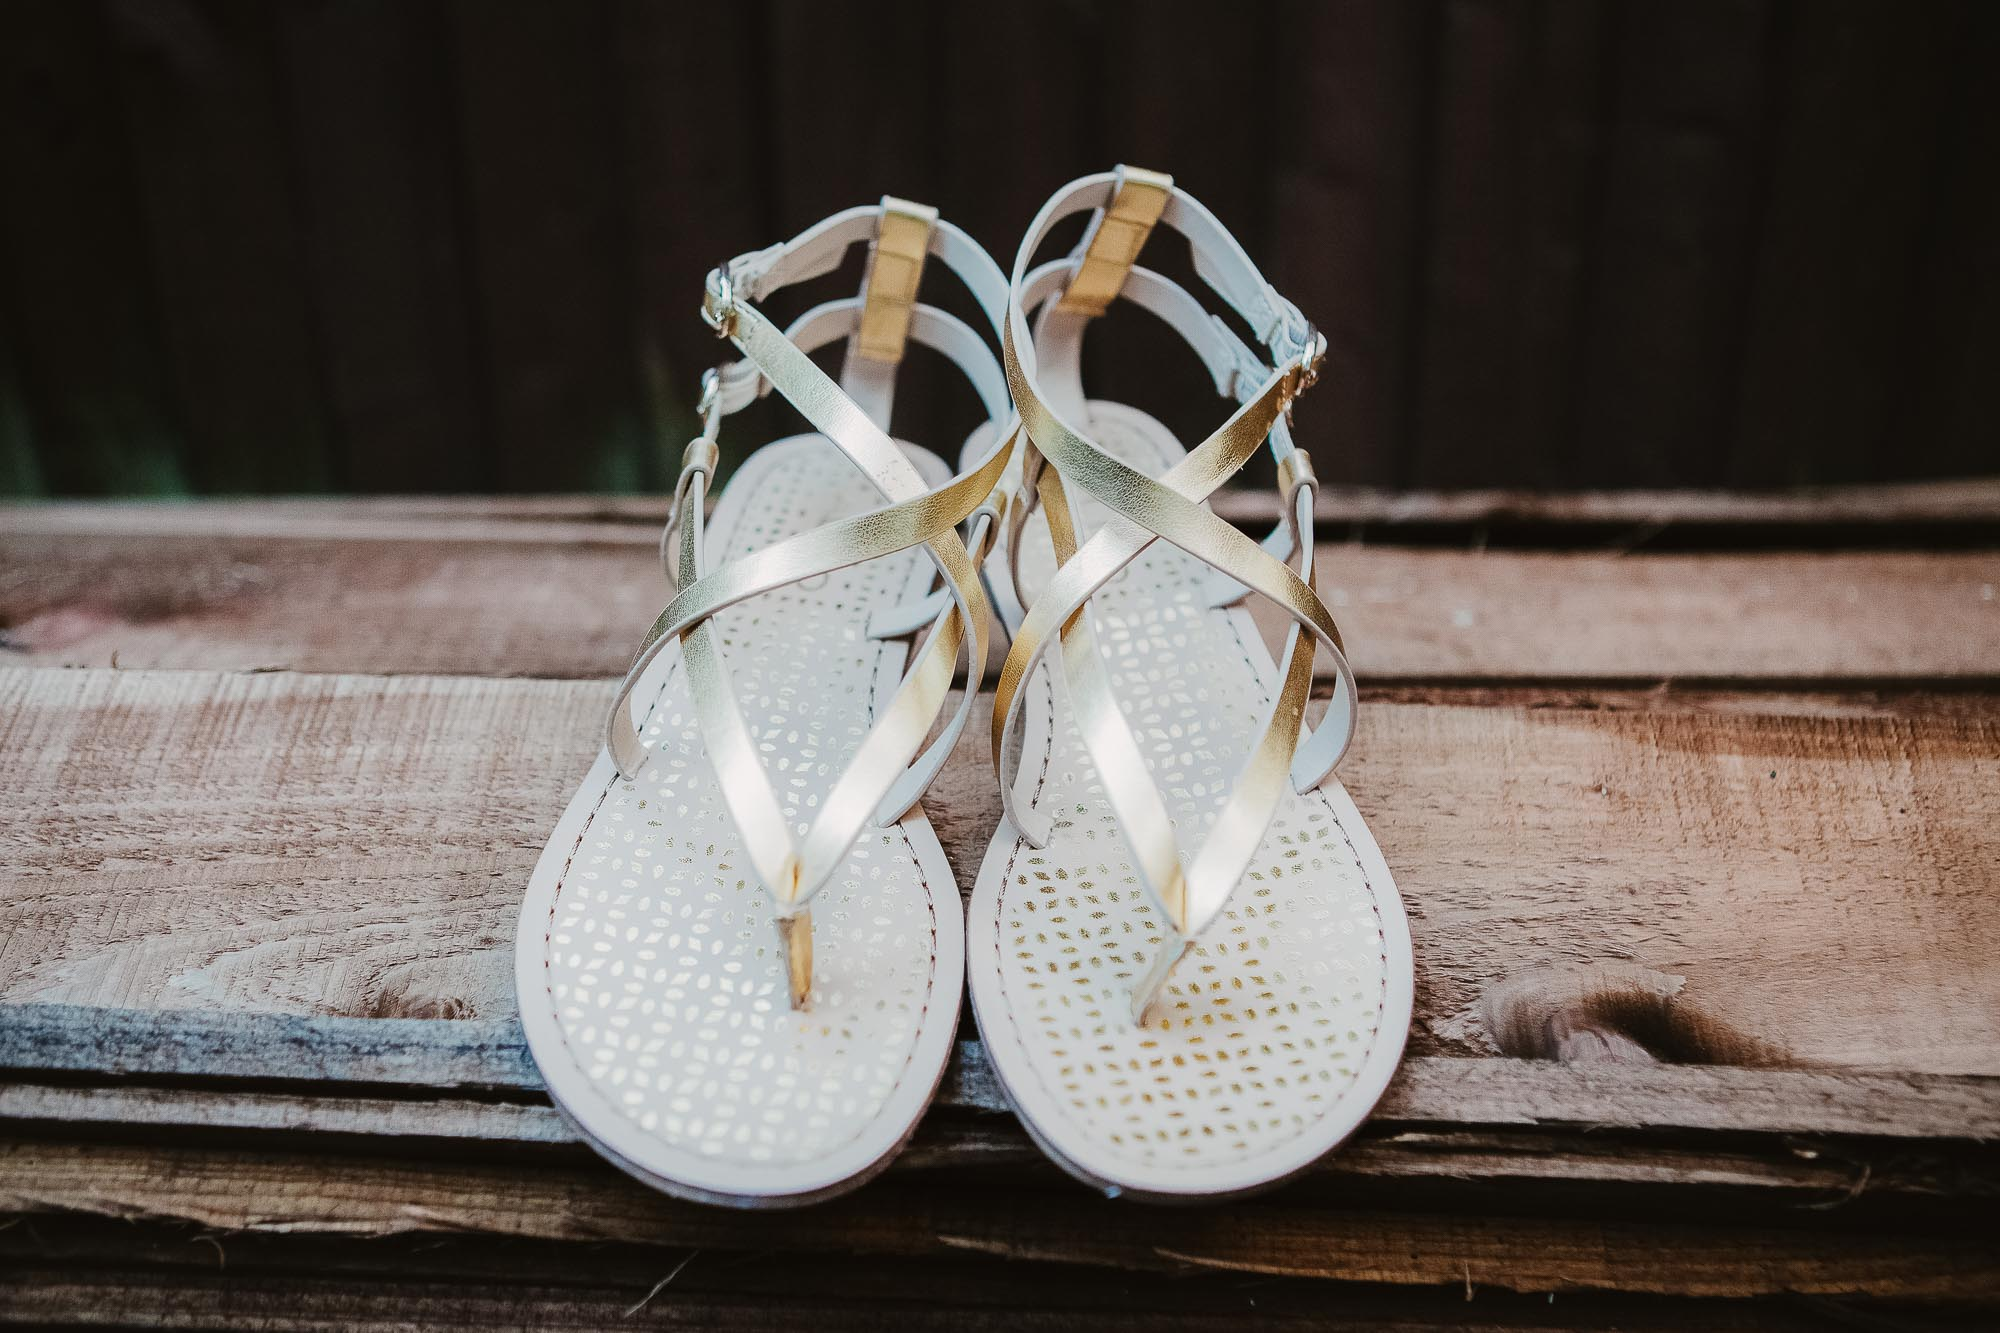 https://philippajamesphotography.com/advice-for-pregnant-brides/ - pregnant friendly wedding shoes